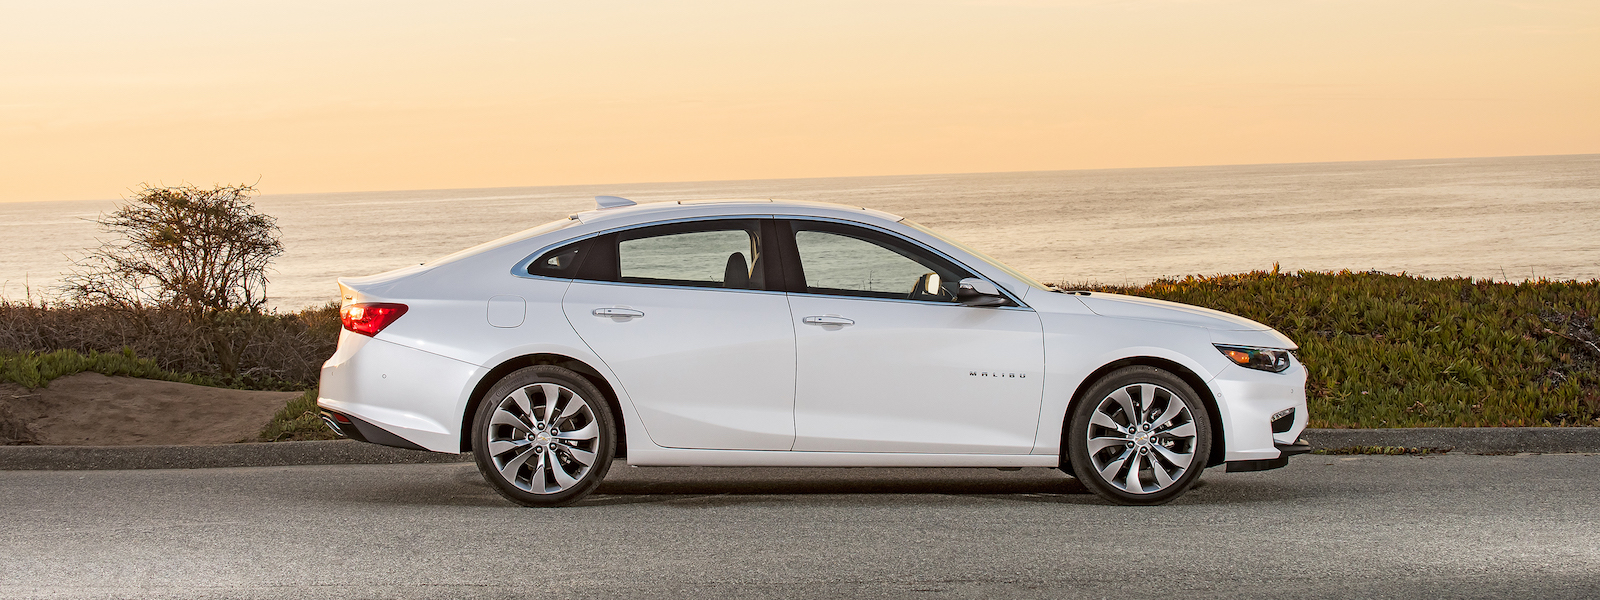 A white 2016 Chevy Malibu is shown from the side in front of the ocean with a yellow sky.